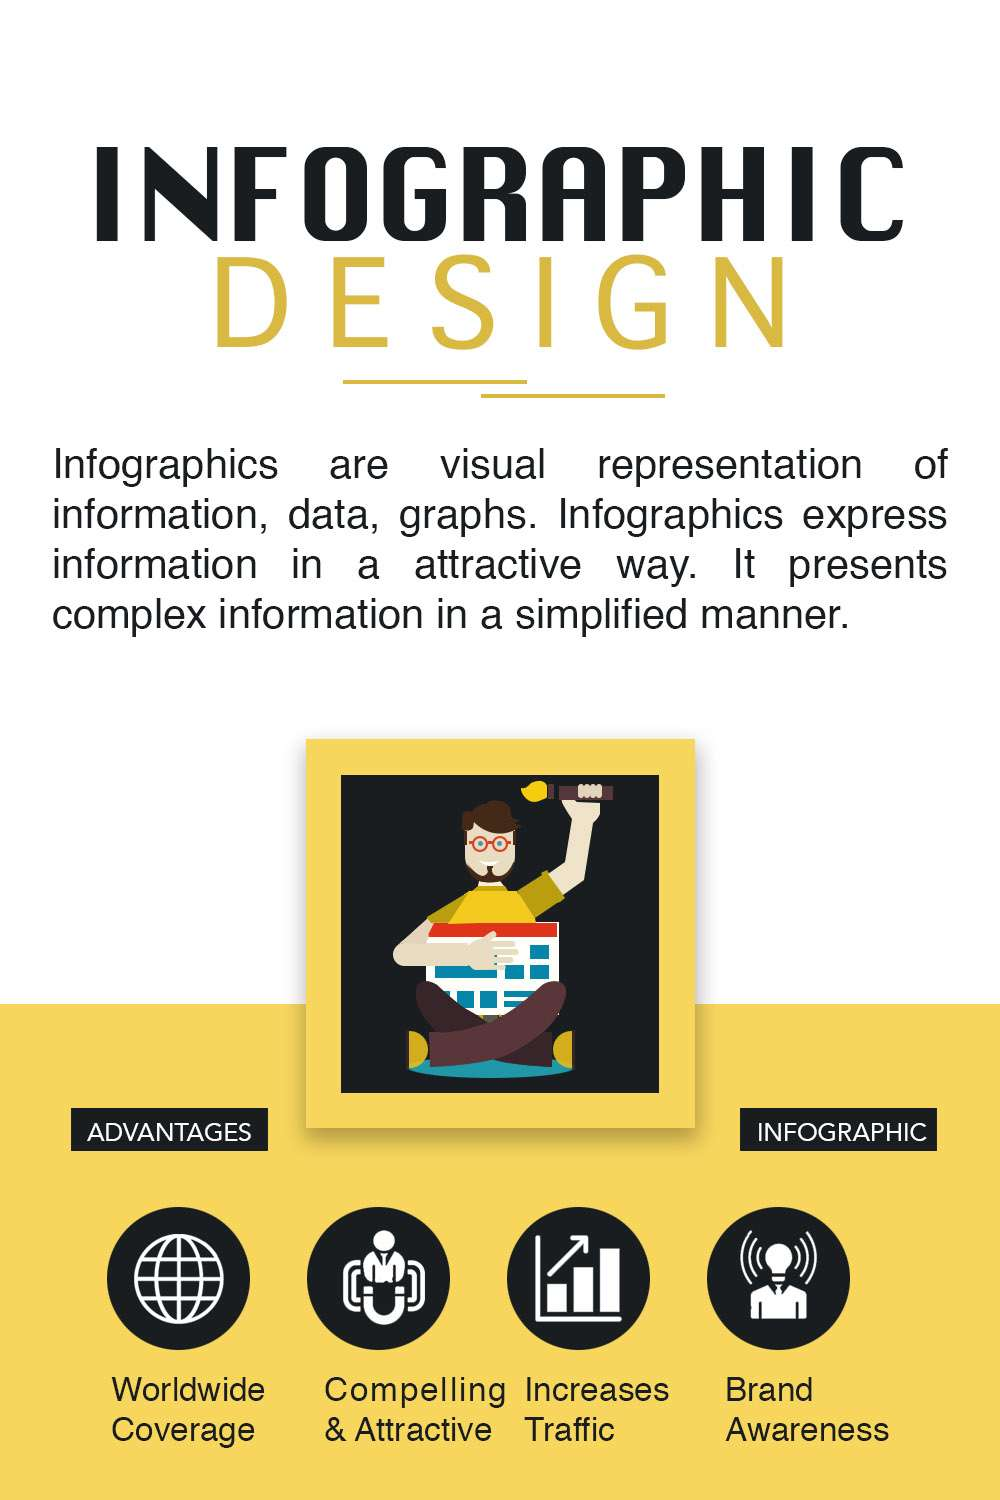 infographic design service in rohini